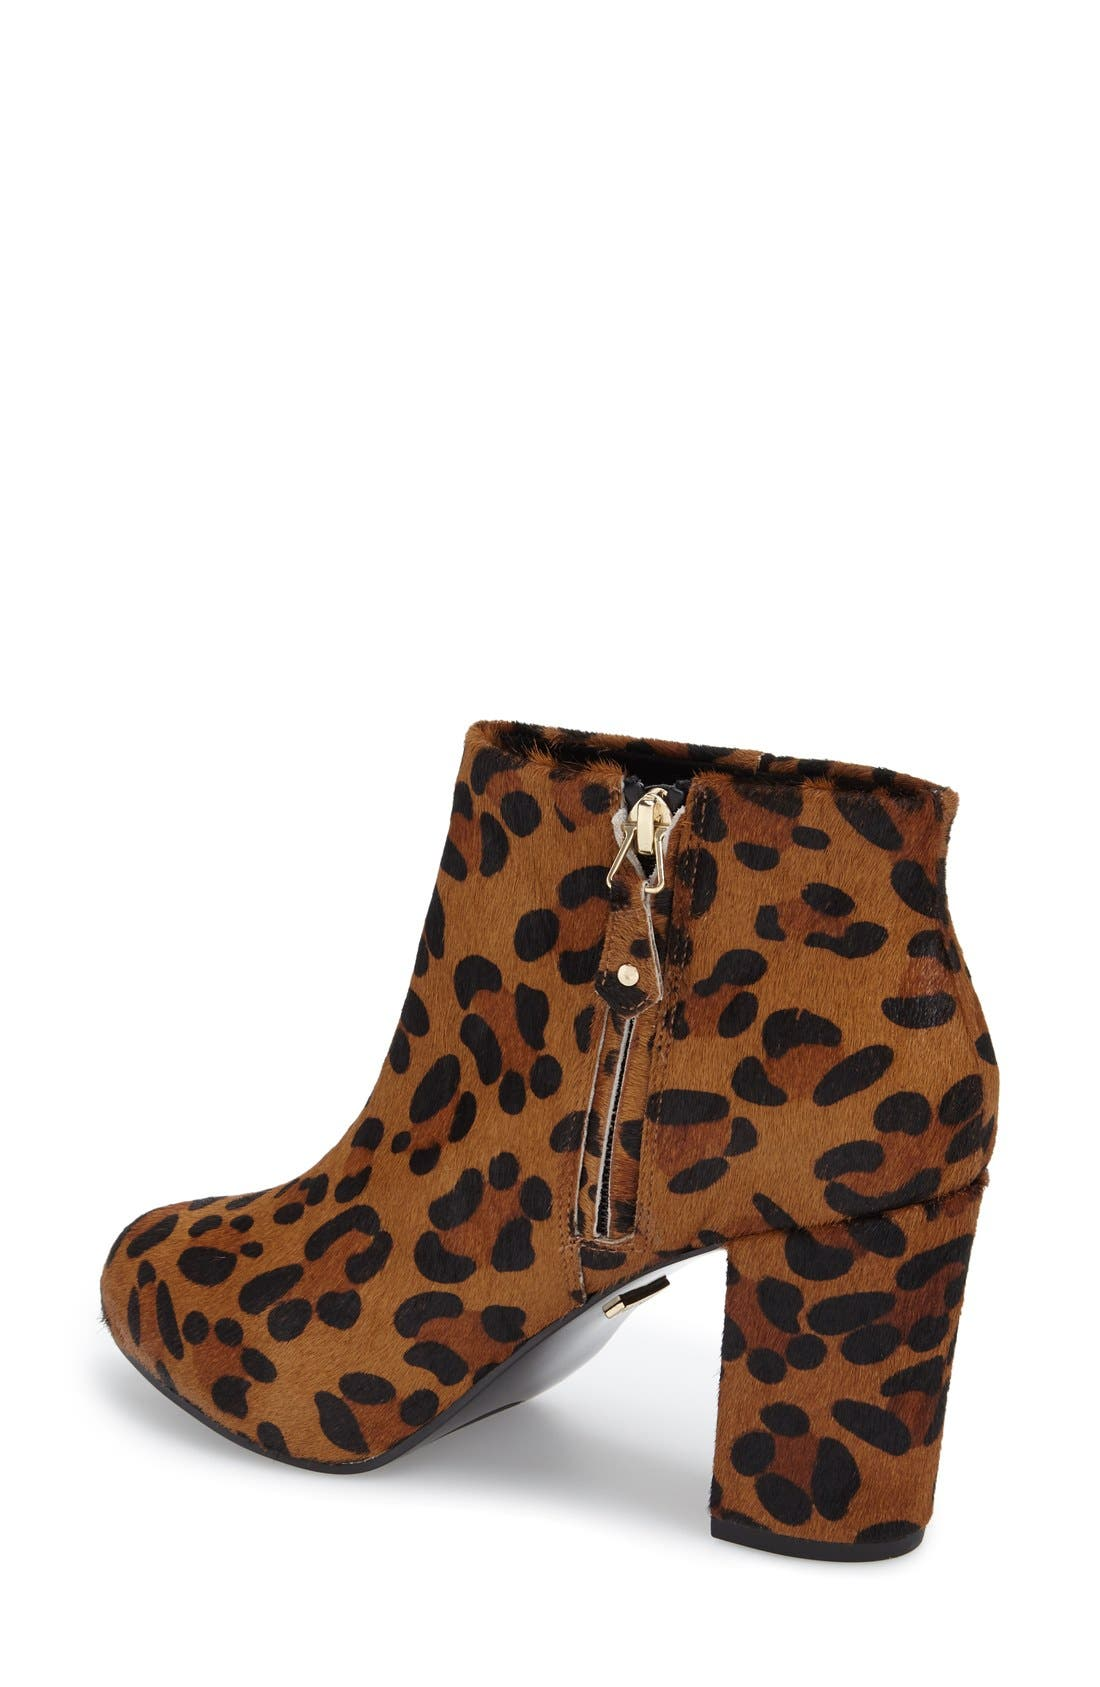 Alternate Image 2  - Topshop 'Miles Inside' Leopard Print Genuine Calf Hair Platform Bootie (Women)